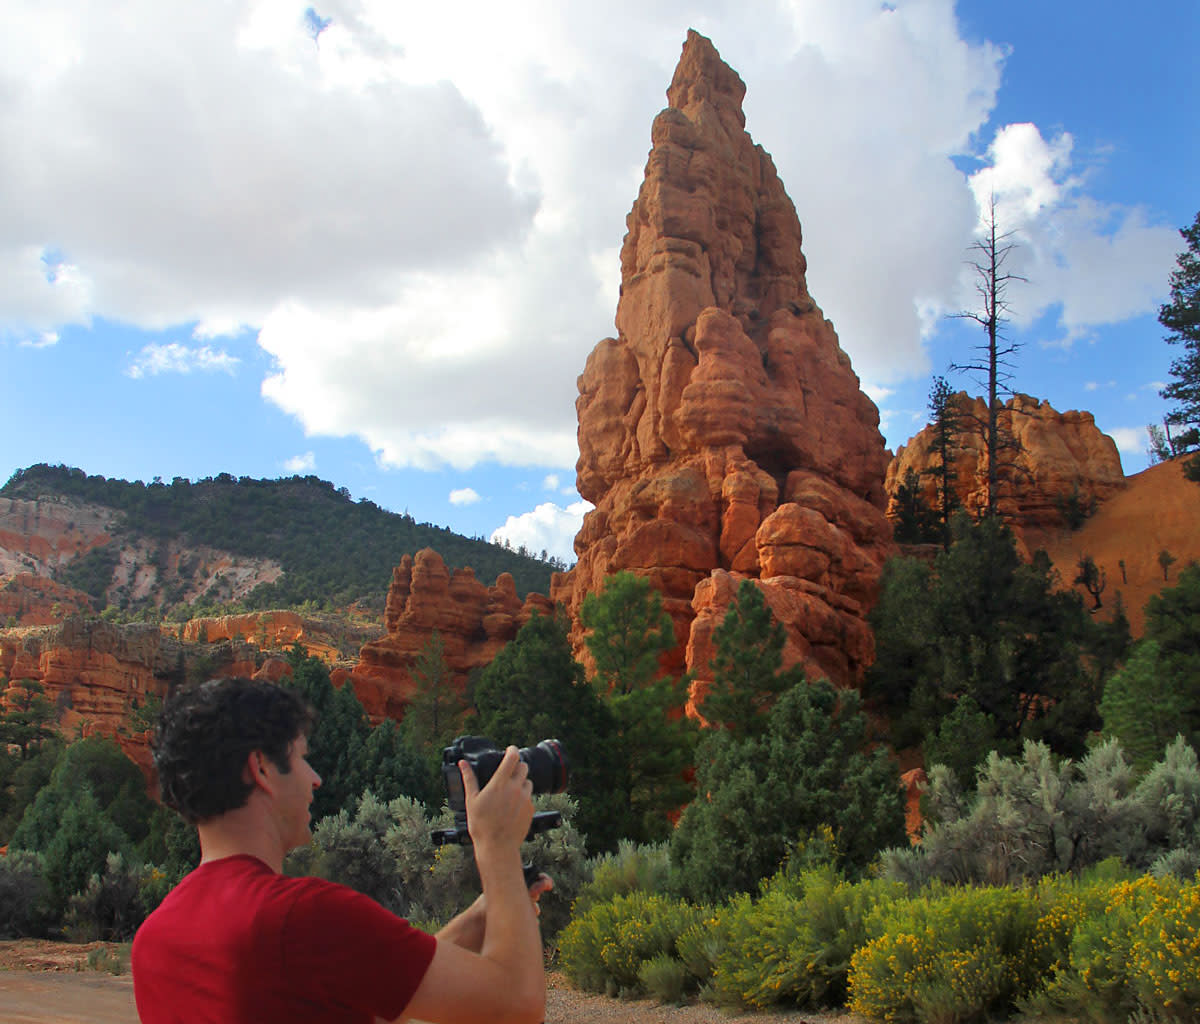 A hiker takes photographs in Red Canyon, part of the Dixie National Forest.